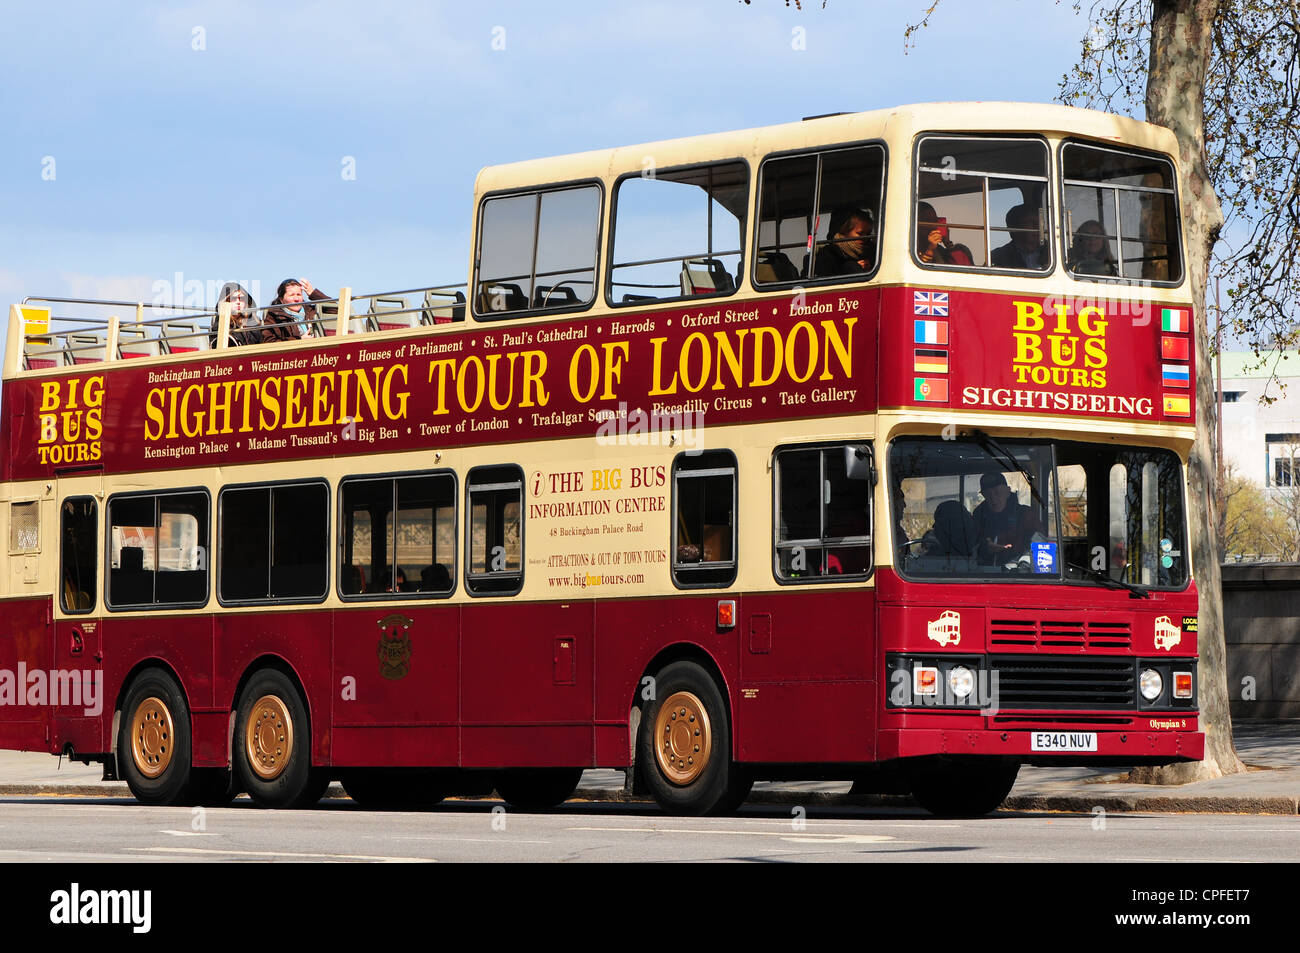 Open top sightseeing bus, London, England - Stock Image